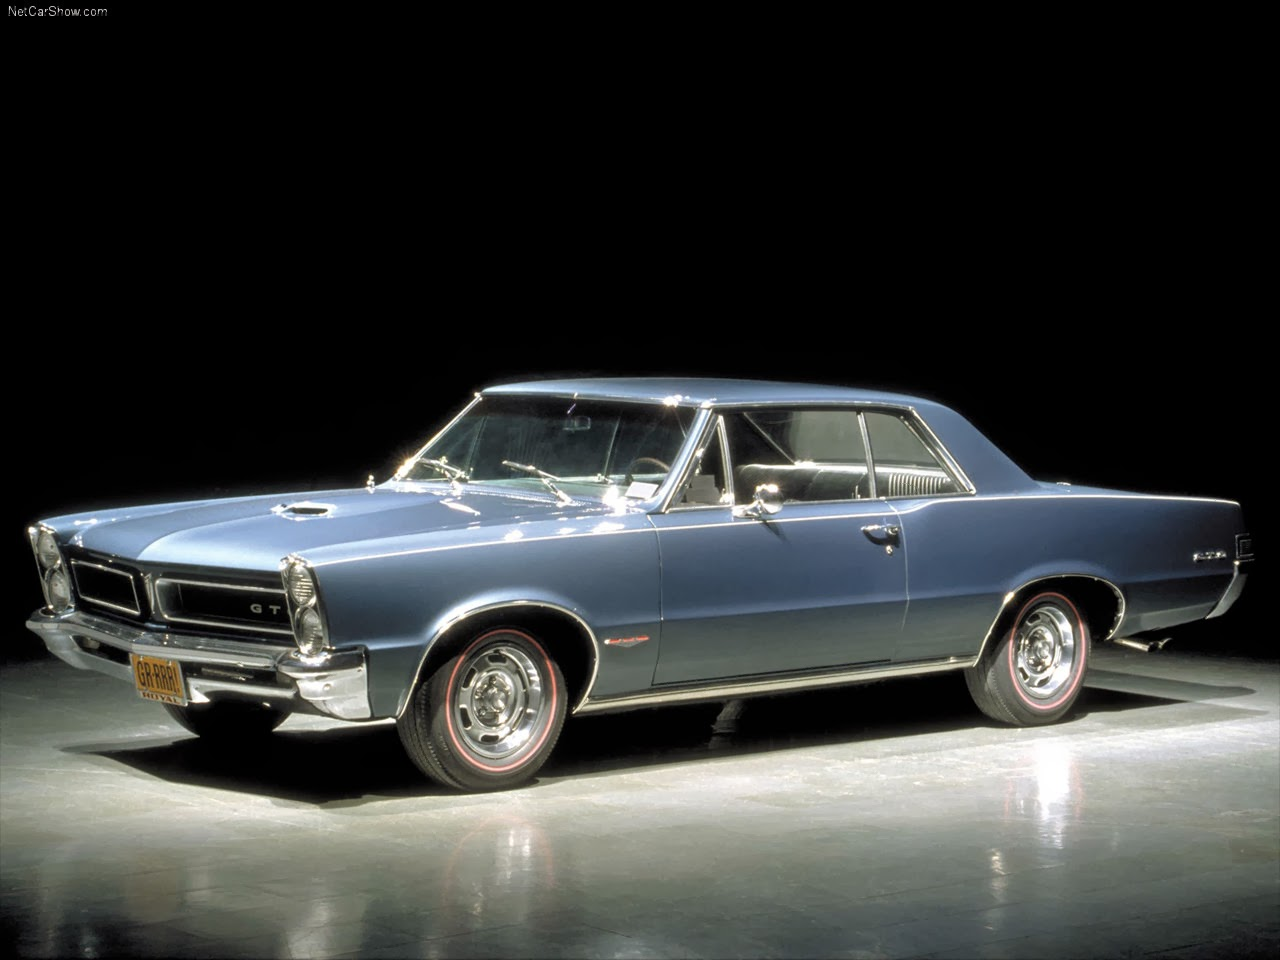 The Best Old Muscle cars 1965 Pontiac GTO